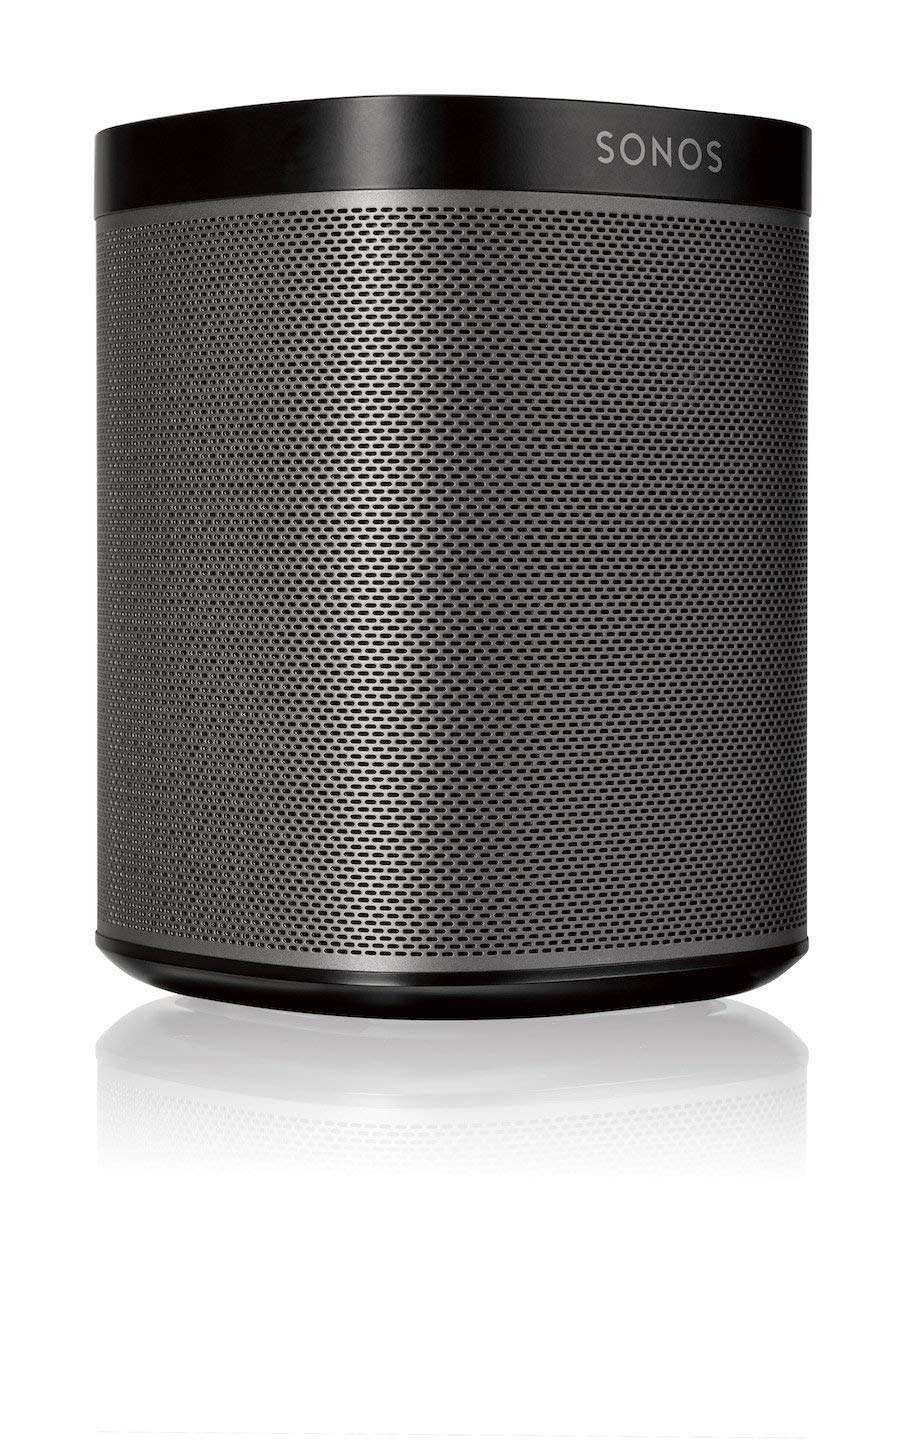 Sonos Play:1 – Compact Wireless Home Smart Speaker for Streaming Music. Works with Alexa. (Black)